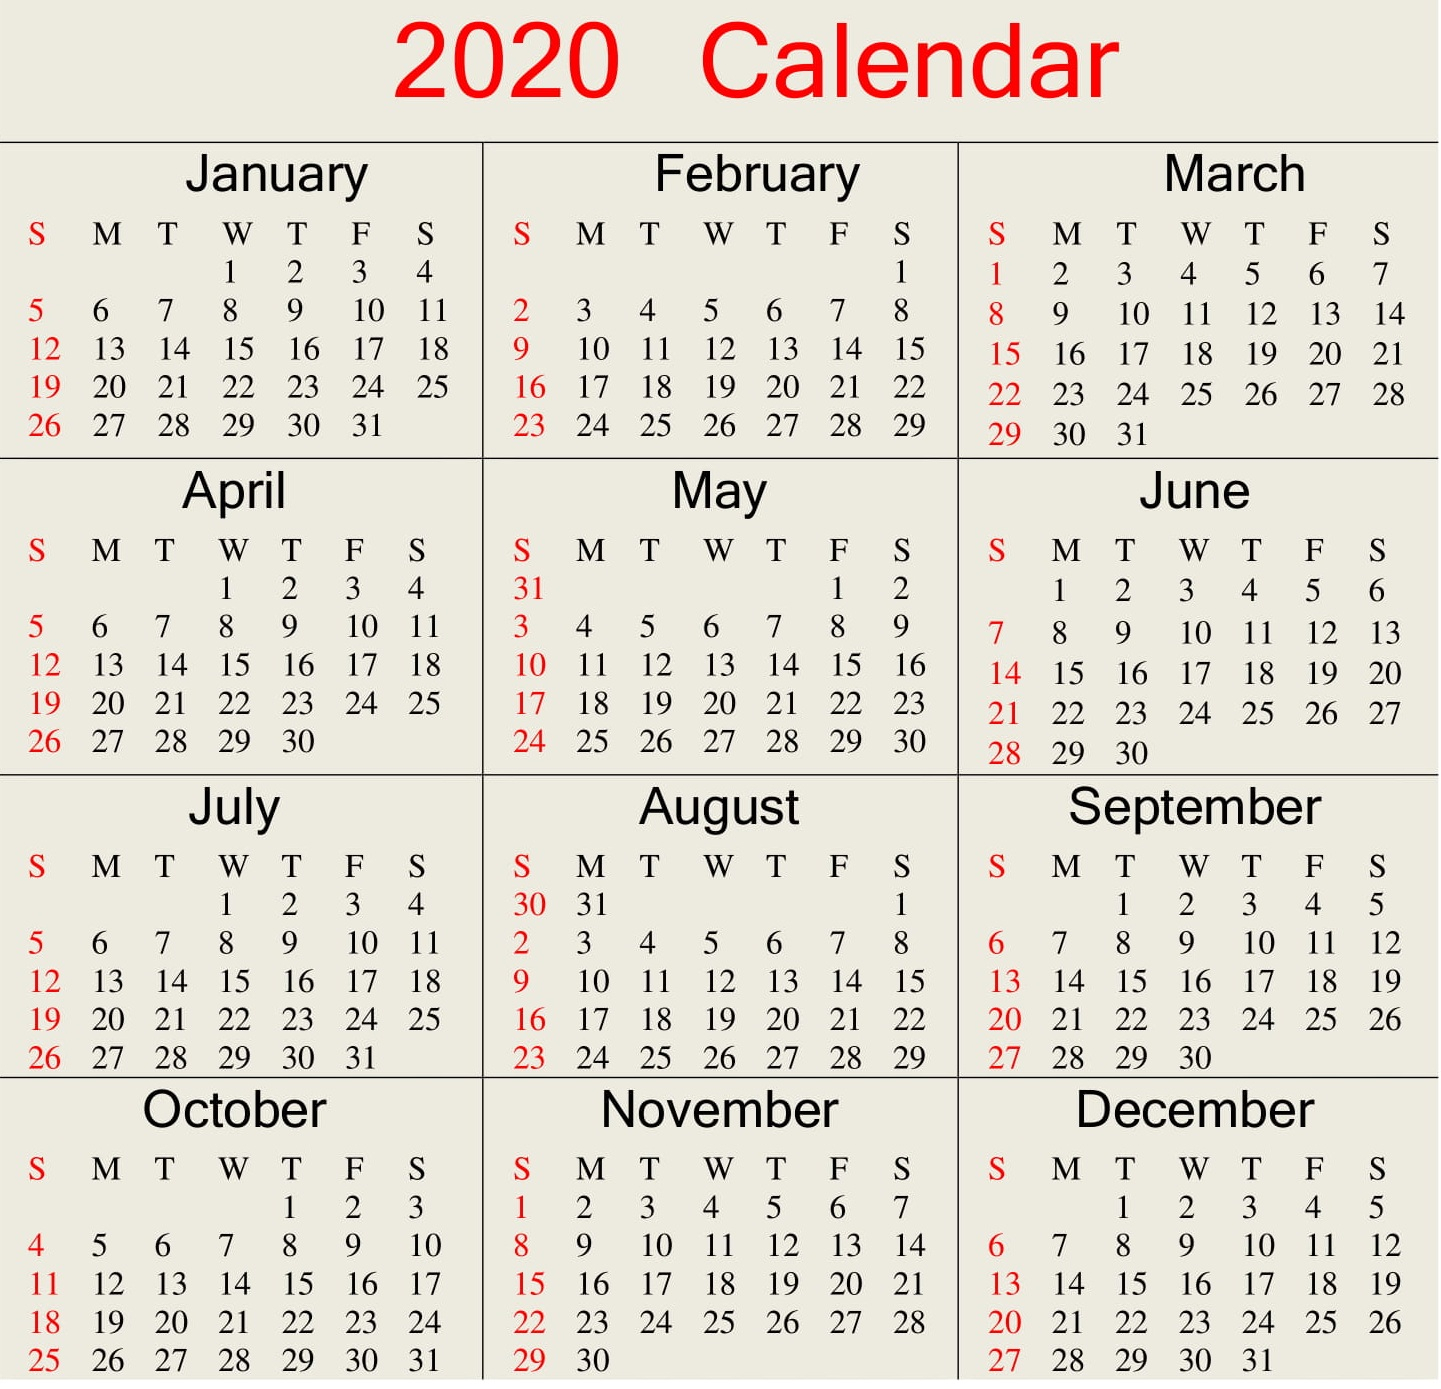 Printable 2020 Calendar Word Document  Latest Printable in Julian Date Calender 2020